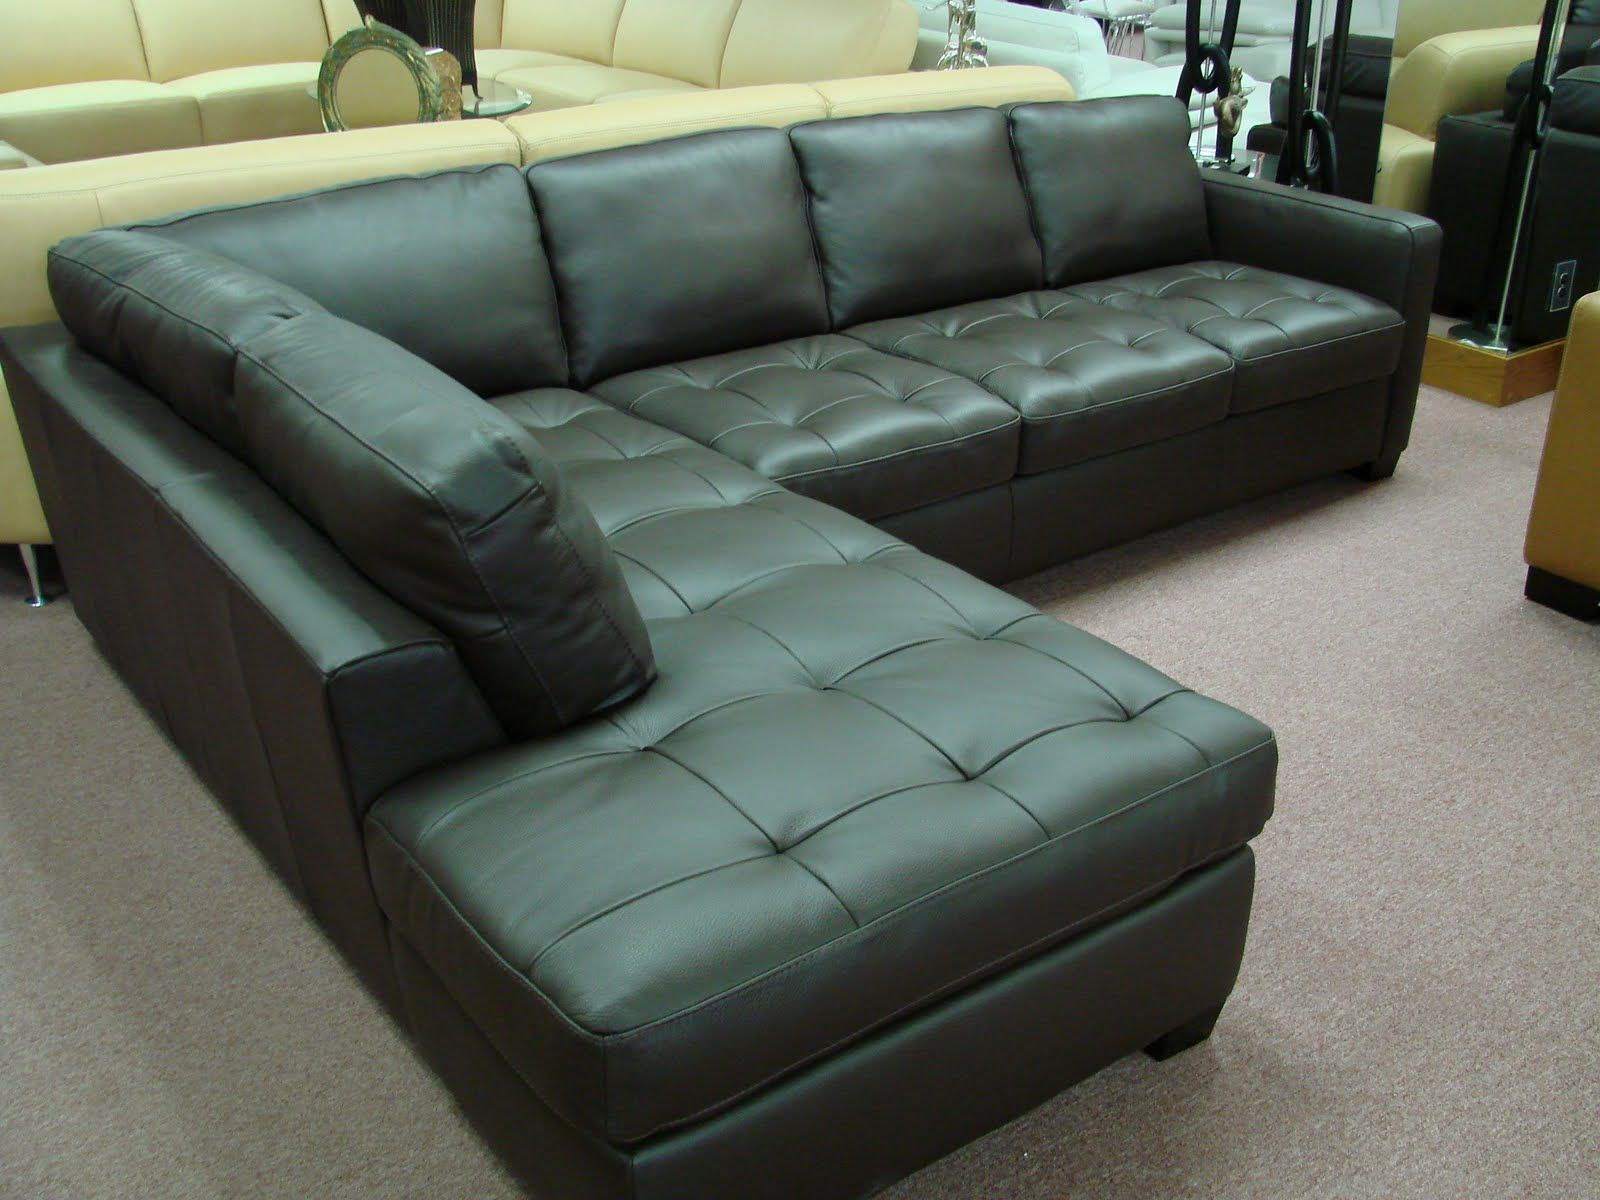 natuzzi i276 black leather sectional